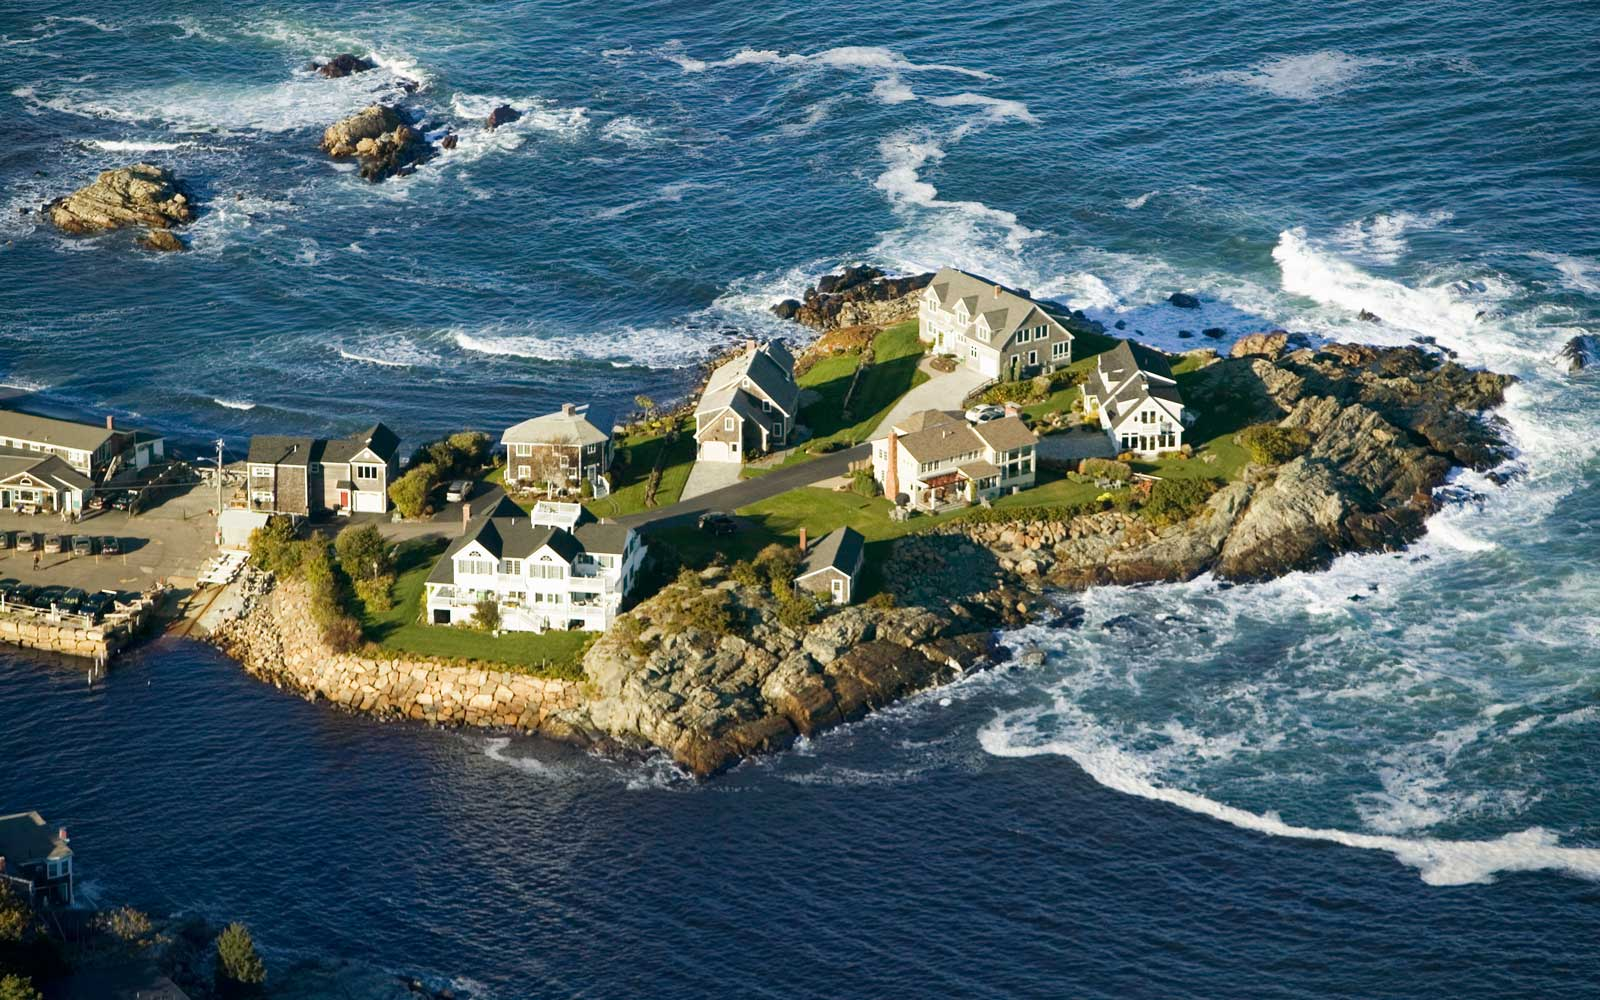 Aerial view of ocean-front homes on Perkins Cove, on coast of Maine south of Portland